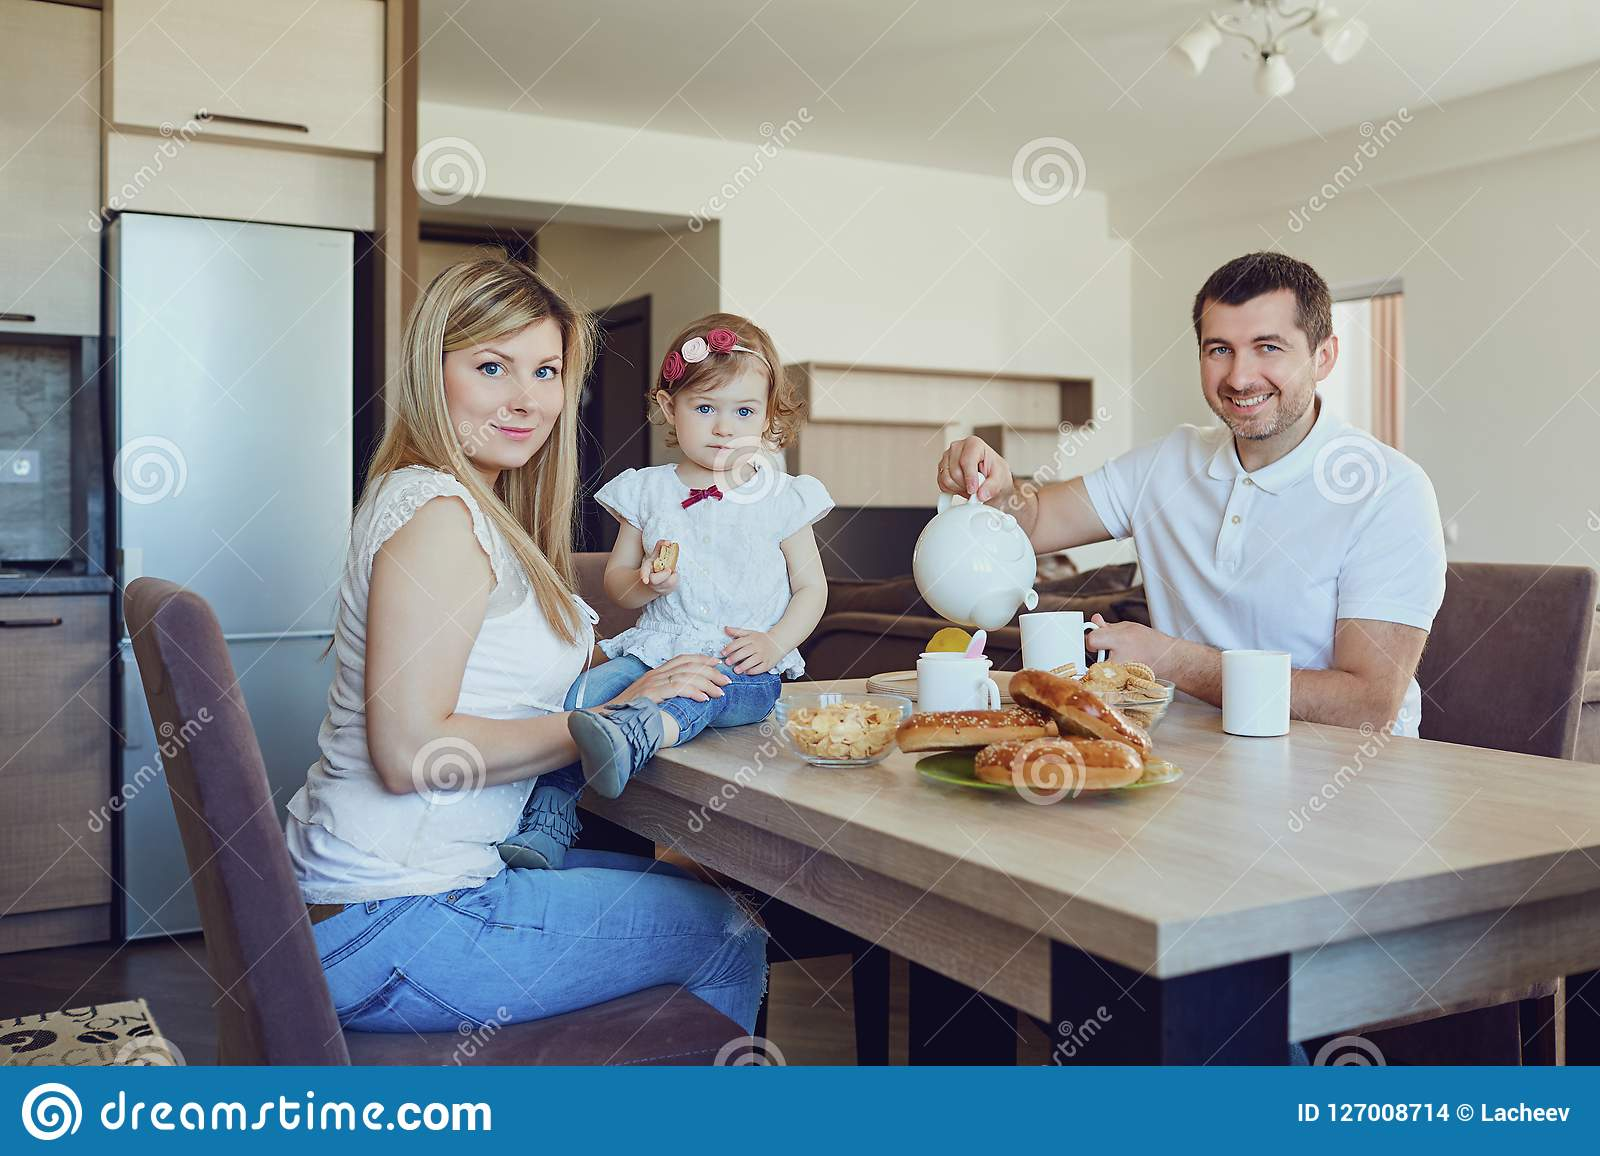 A happy family in the kitchen while sitting at a table.